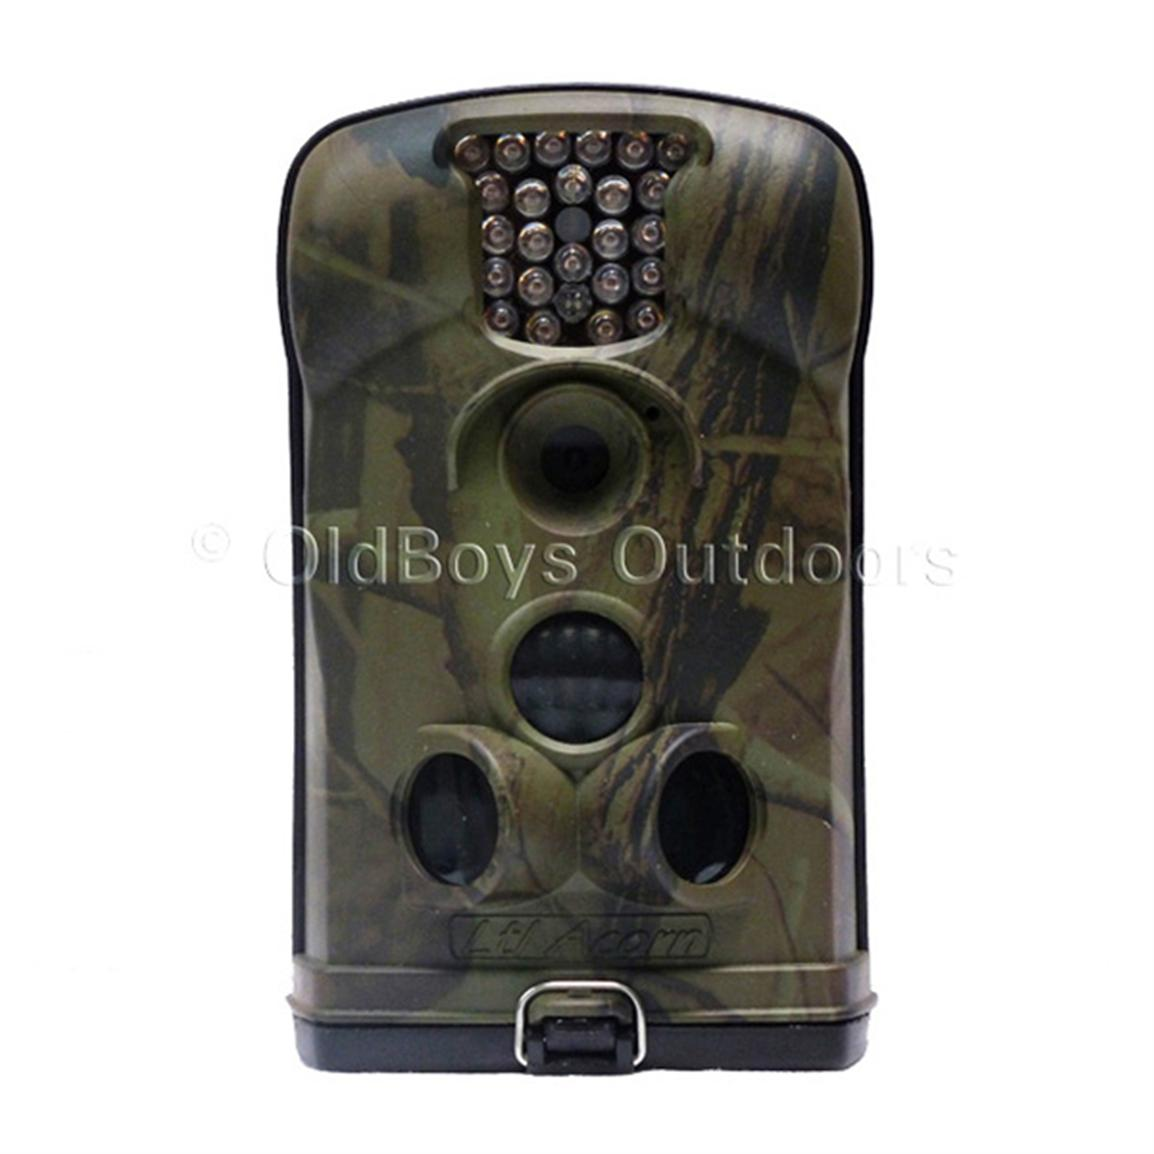 OldBoys Outdoors® Little Acorn 12-megapixel HD Video Trail Camera